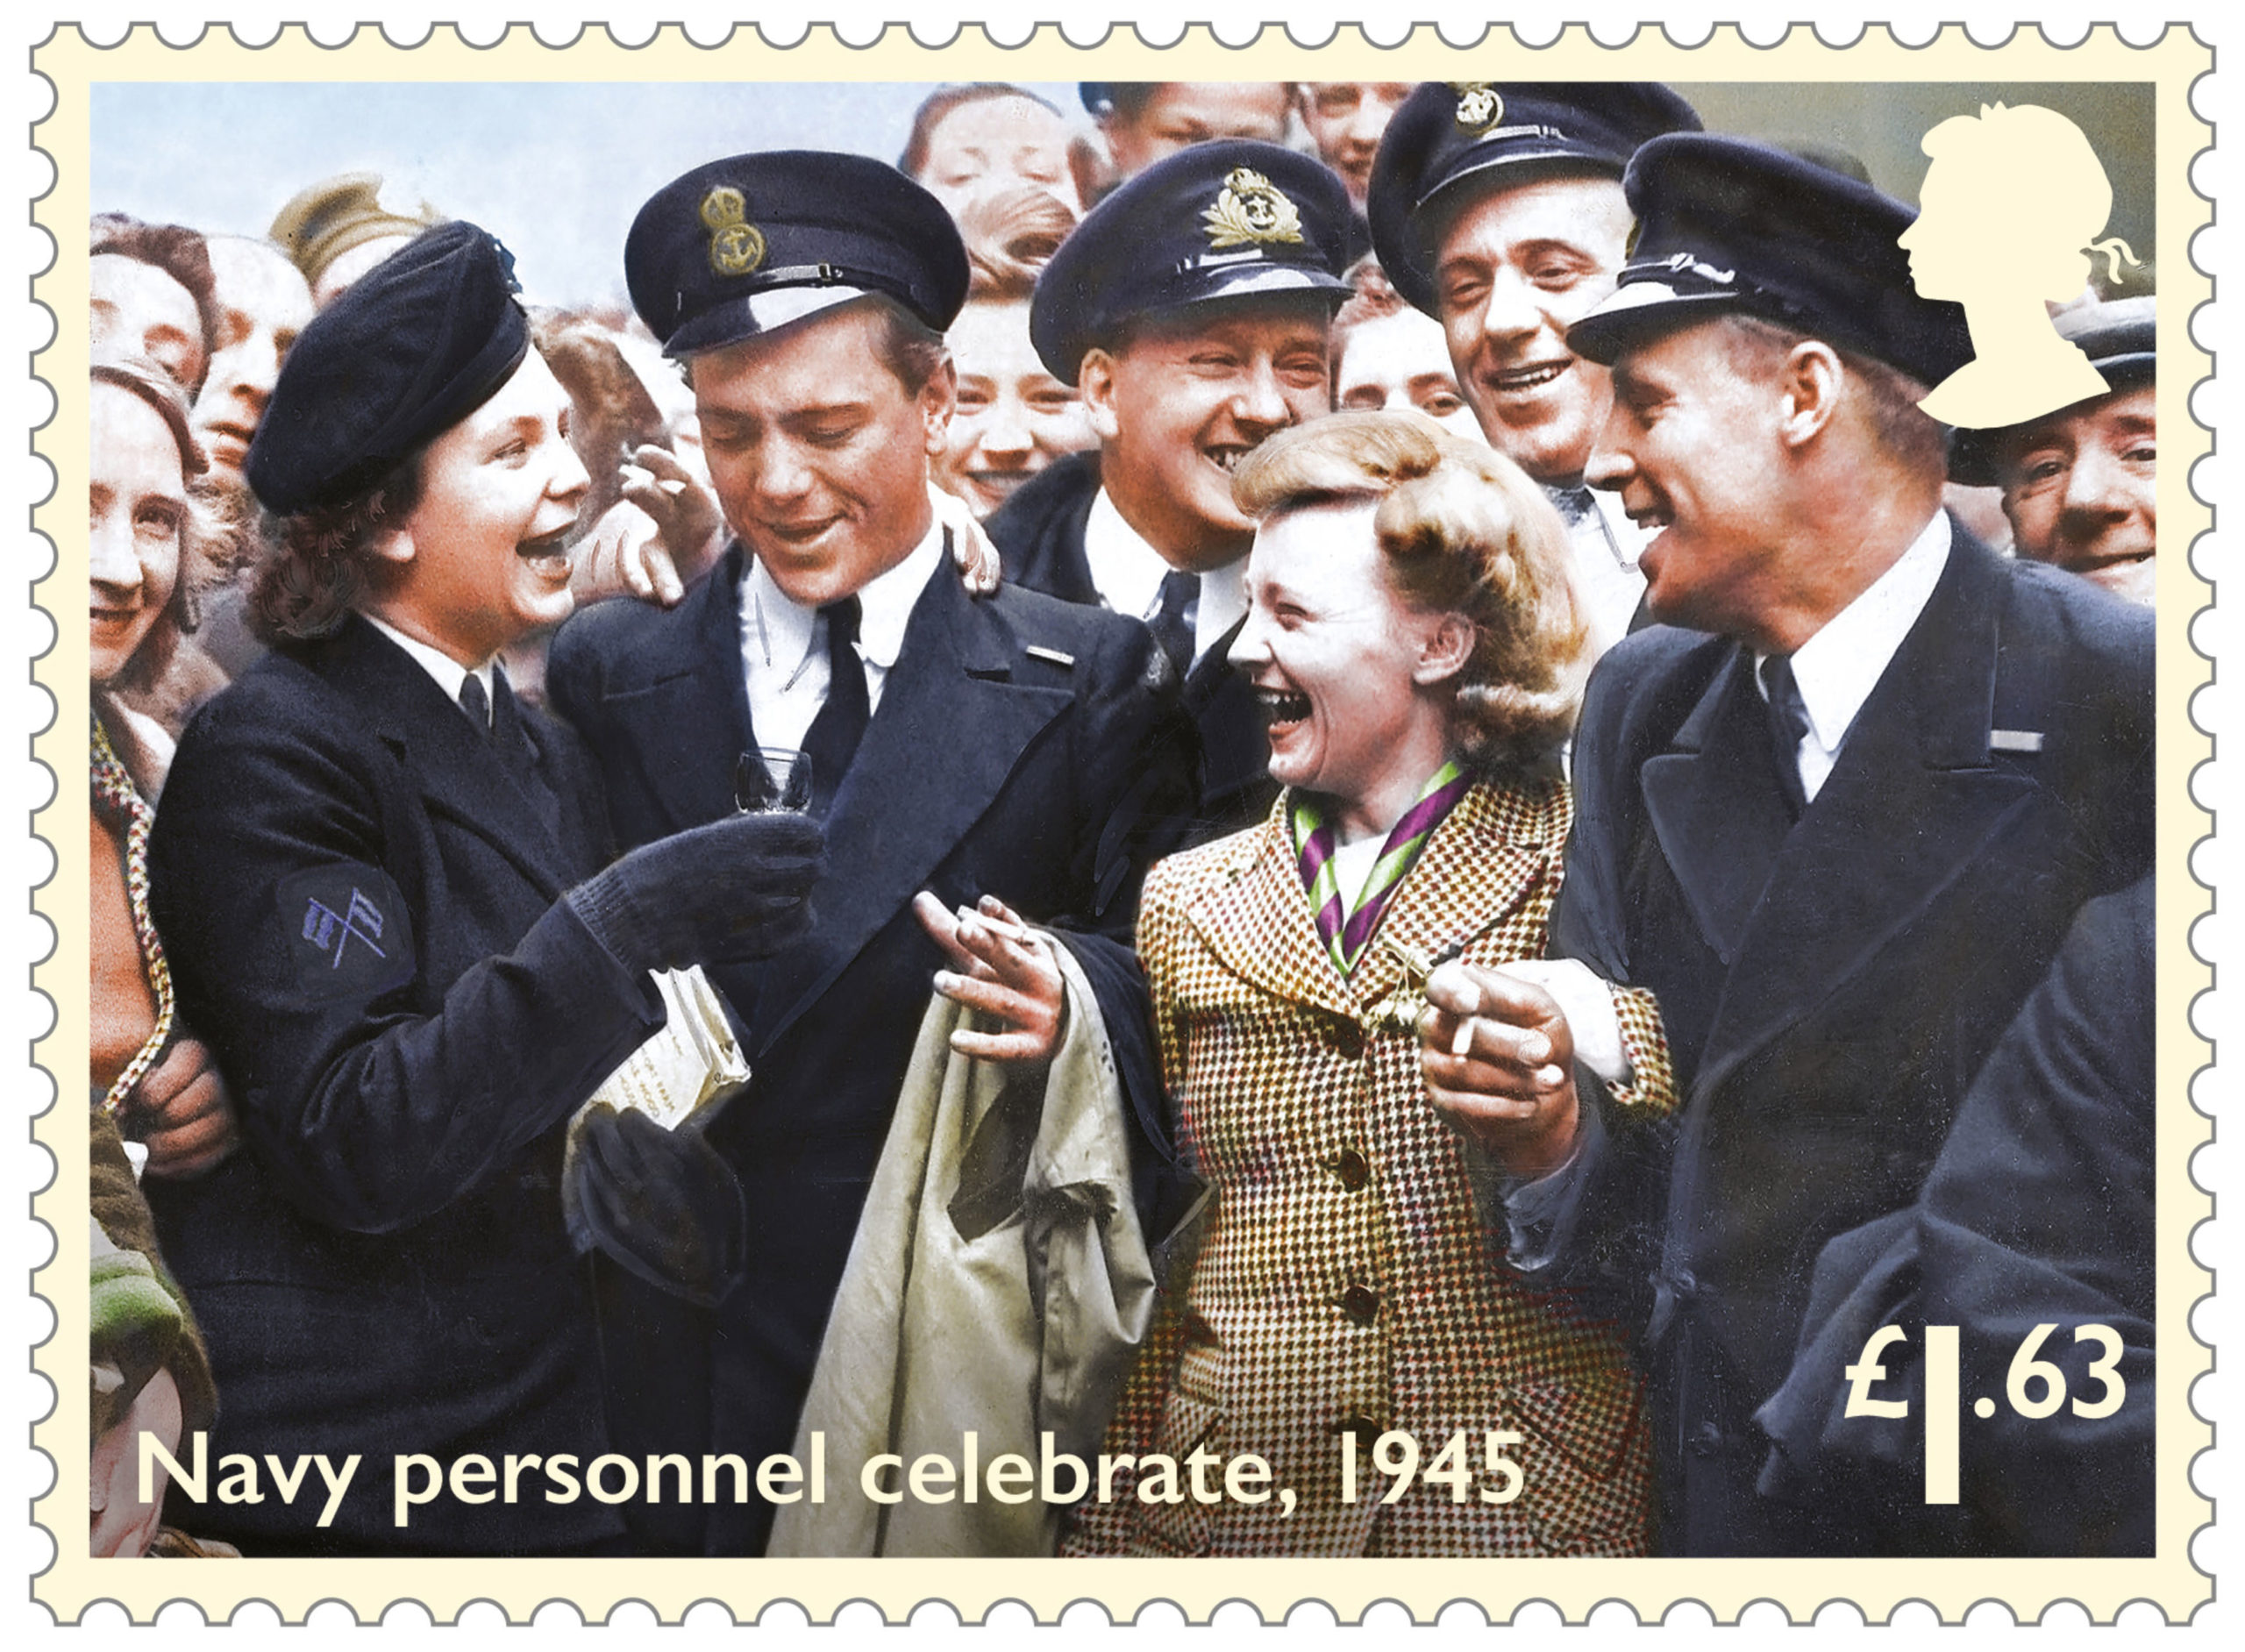 A Wren, left, proposes a toast to Navy colleagues during VE Day celebrations in Glasgow, in one of eight colourised stamps released by Royal Mail to commemorate the 75th anniversary of the end of the Second World War on May 8, 1945